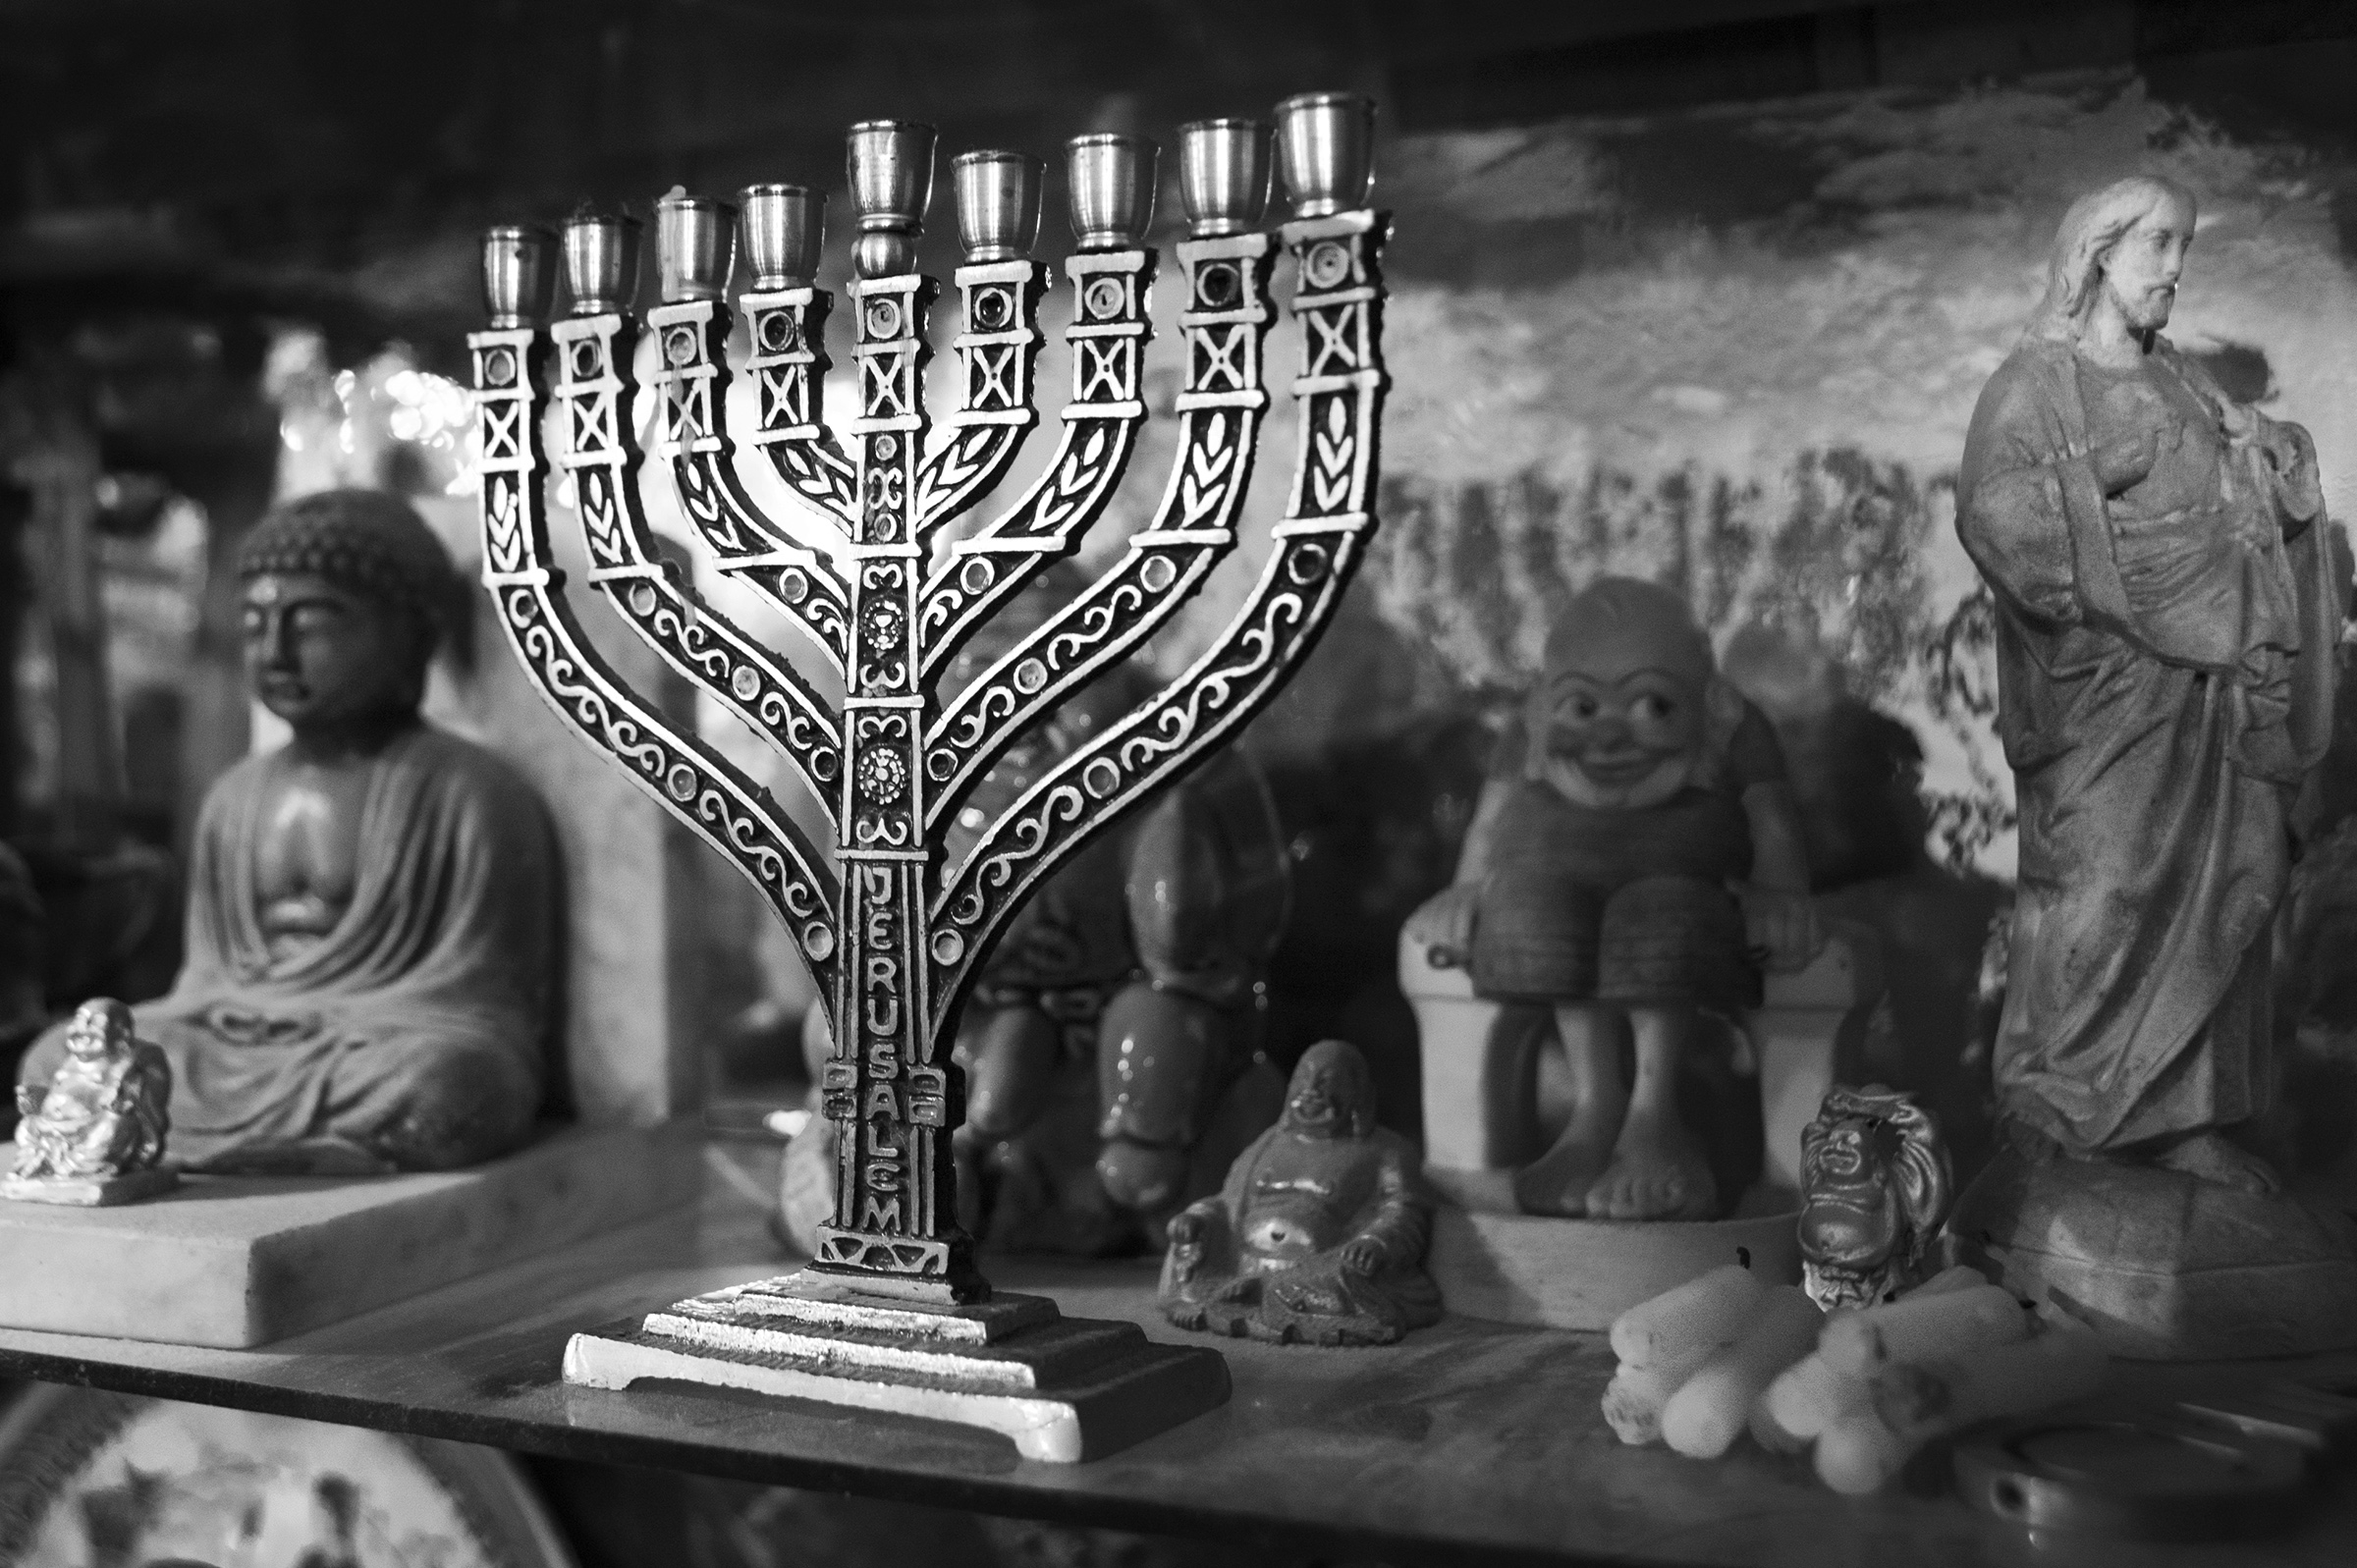 "The menorah stands on a crowded shelf in the home of Paul Spitzer (not pictured), the son of Holocaust survivor Amram Yehekztel on January 7, 2015. Though now a regular member at the community center in Oradea, Spitzer grew up without practicing the many religious traditions of Judaism, but credits his daughter with bringing him back to his roots. ""I believe the community has a future. I don't know how it will happen, but it's like a branch that has been broken, but the seed has survived."" explains Spitzer. (Photo by Daniel Owen/GroundTruth)"